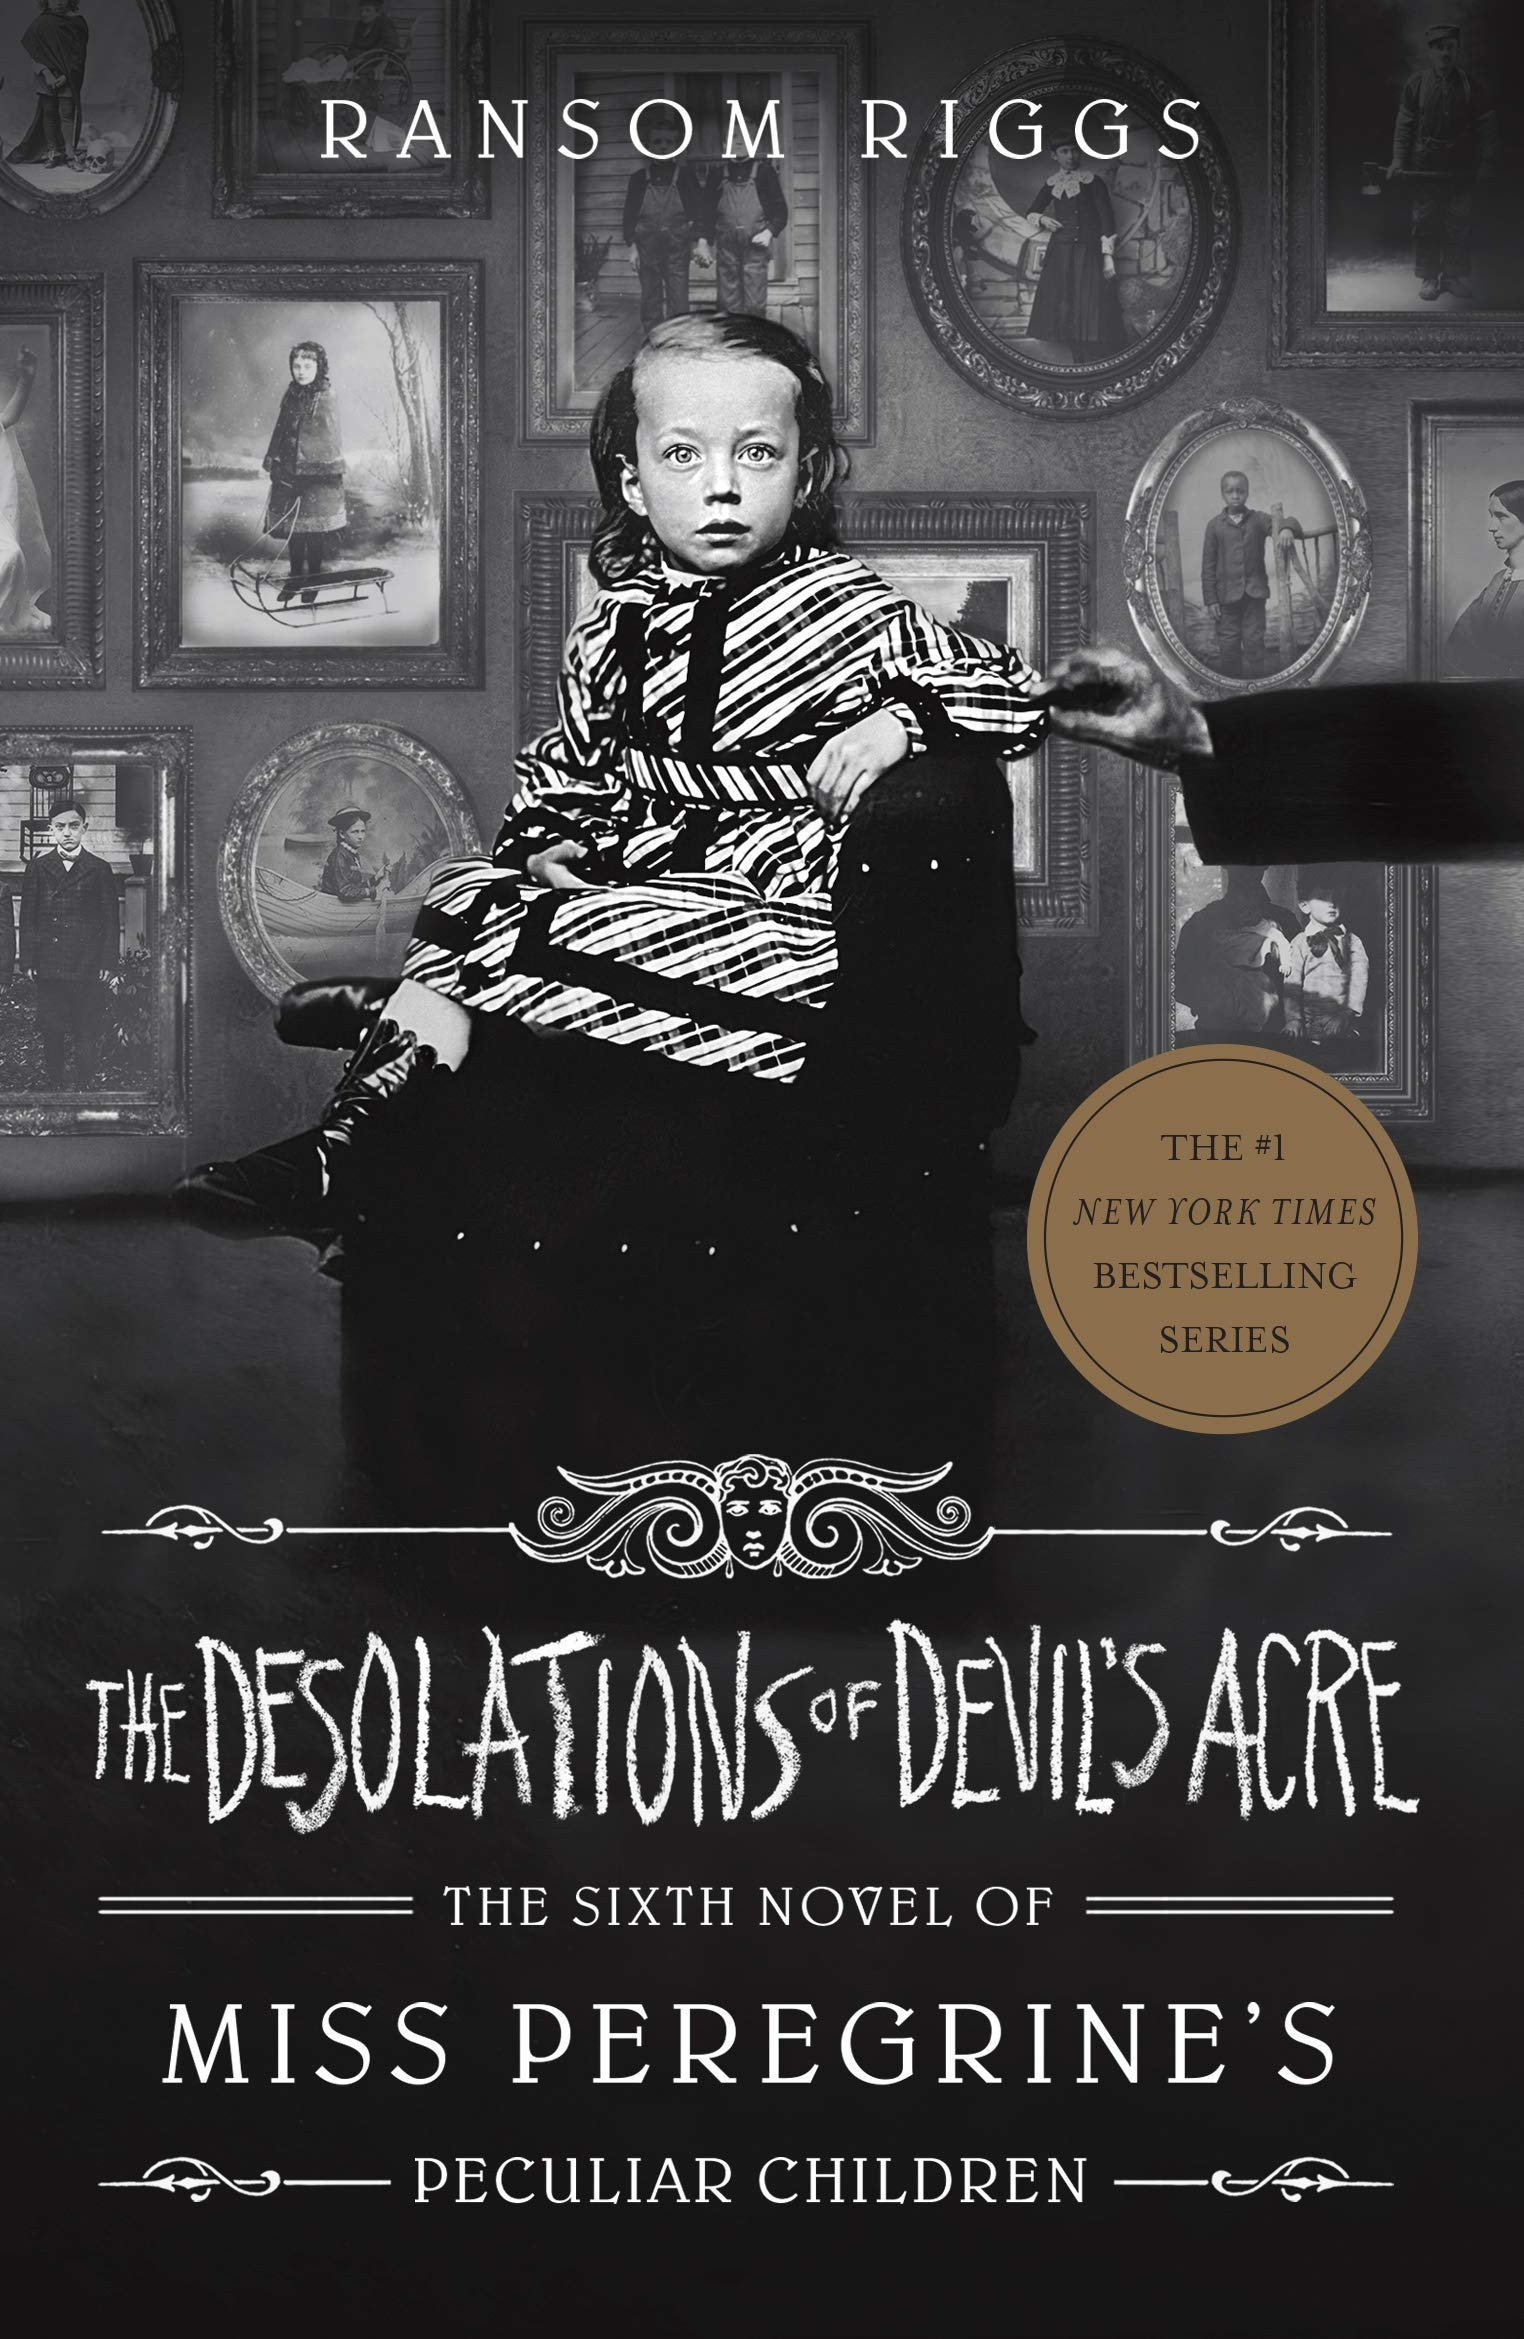 Ransom Riggs: The Desolations of Devil's Acre